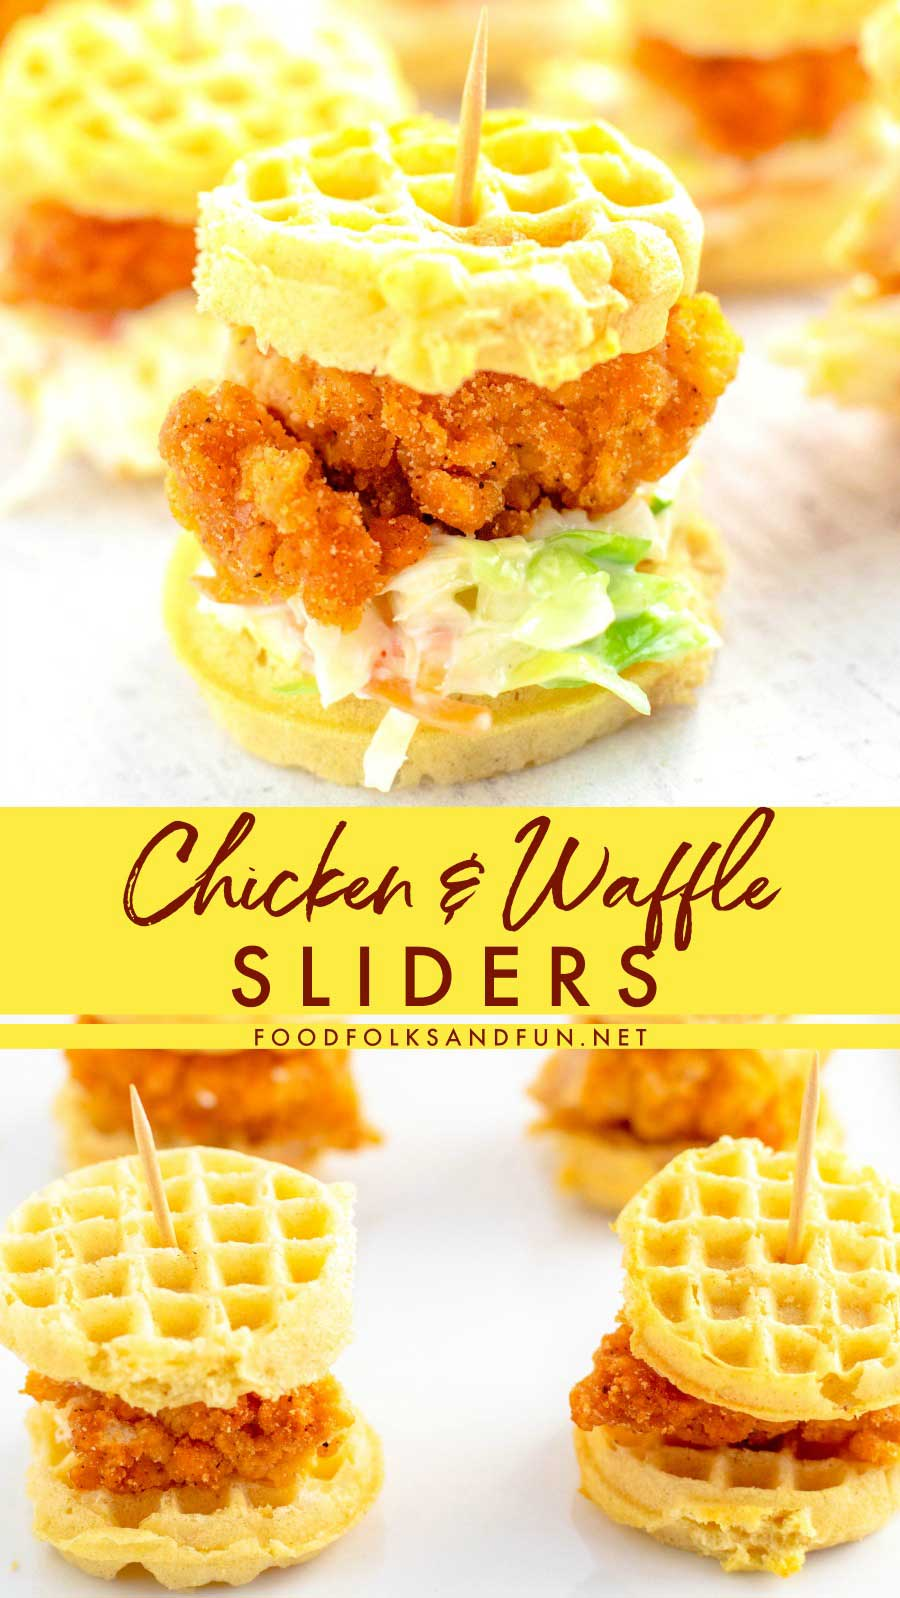 These Chicken and Waffle Sliders are the easiest game day, Super Bowl, or party food recipe that you will make! They're quick & easy to make and they're always a crowd pleaser. via @foodfolksandfun